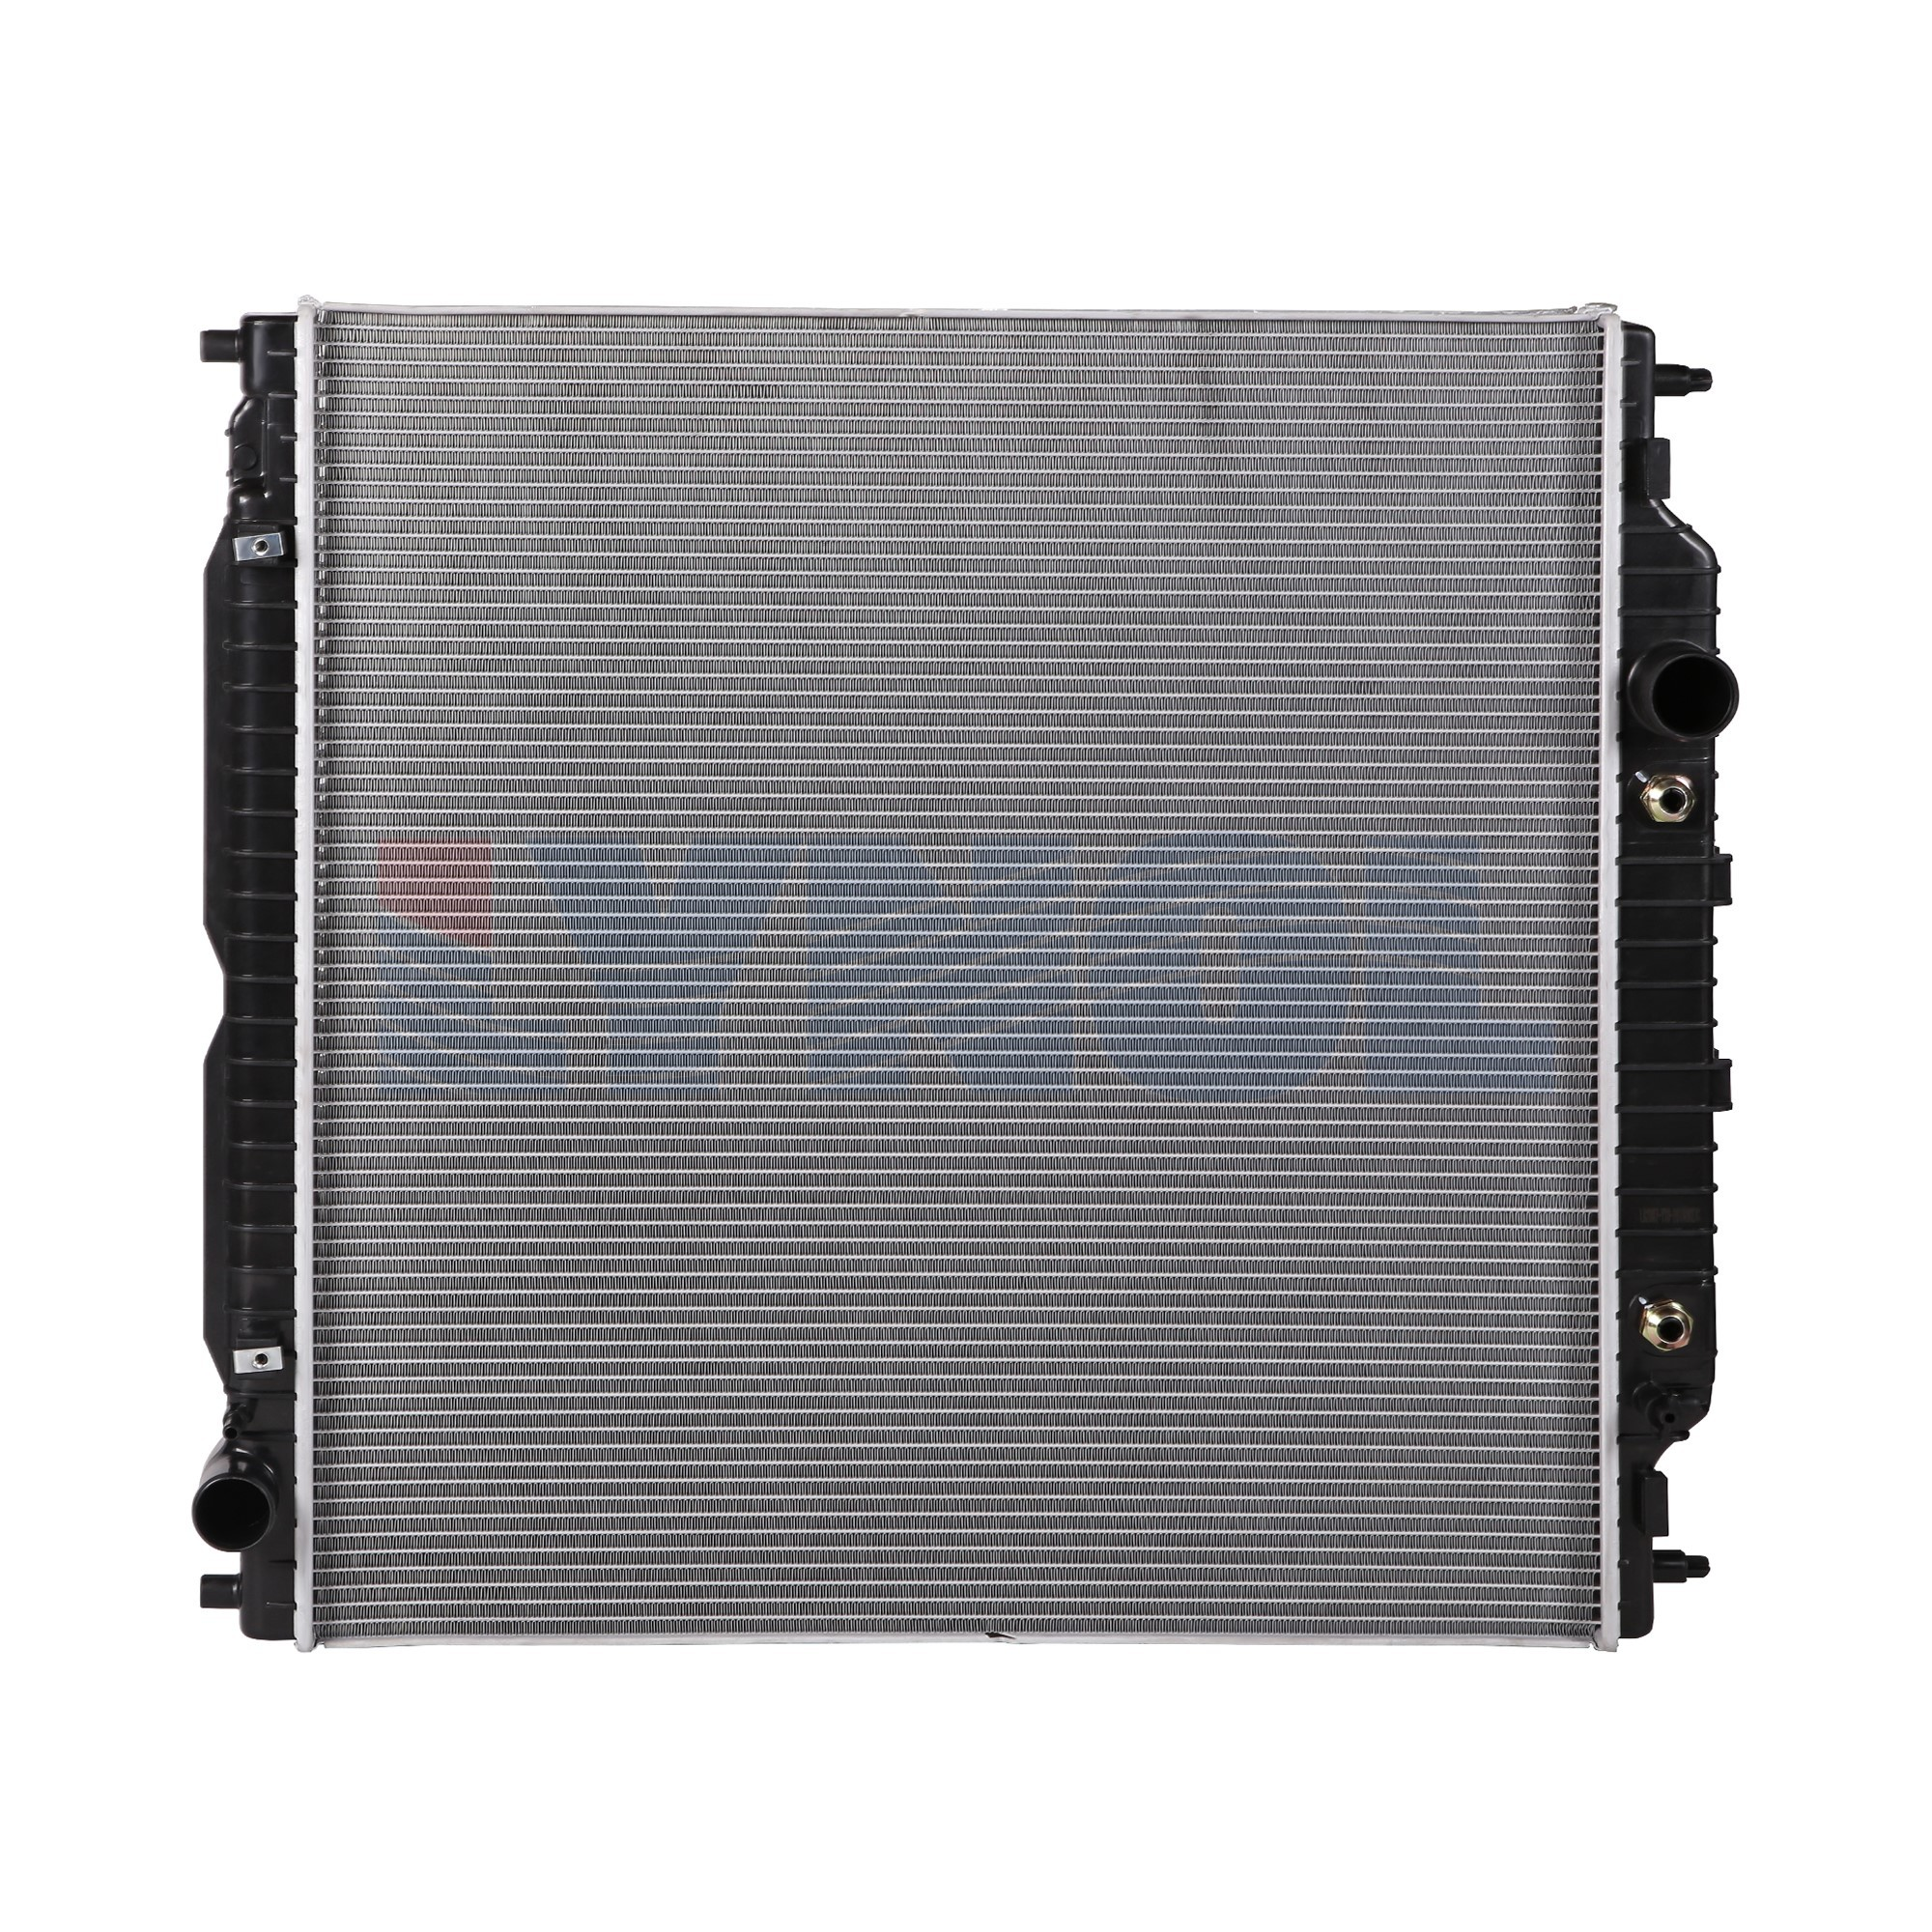 LR2887 - RADIATOR  - 05-08 FOR F-SRS S.DUTY A/T 6.0/6.8L RADIATOR***